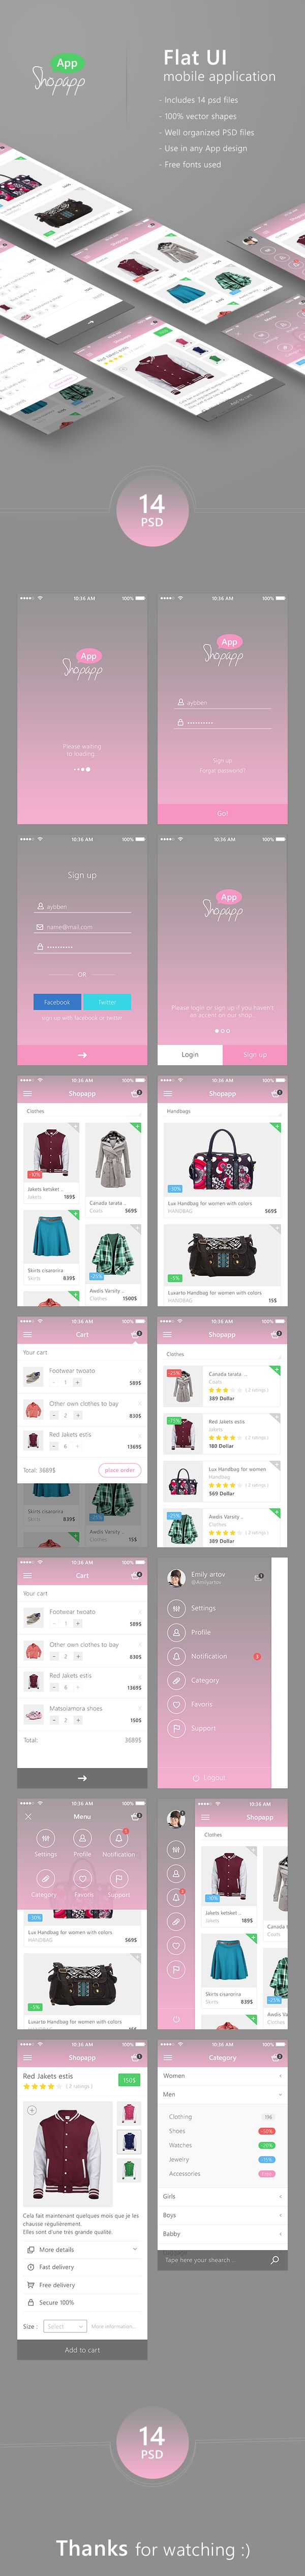 Shopapp - Flat Mobile App UI - Shopping + Download on Behance